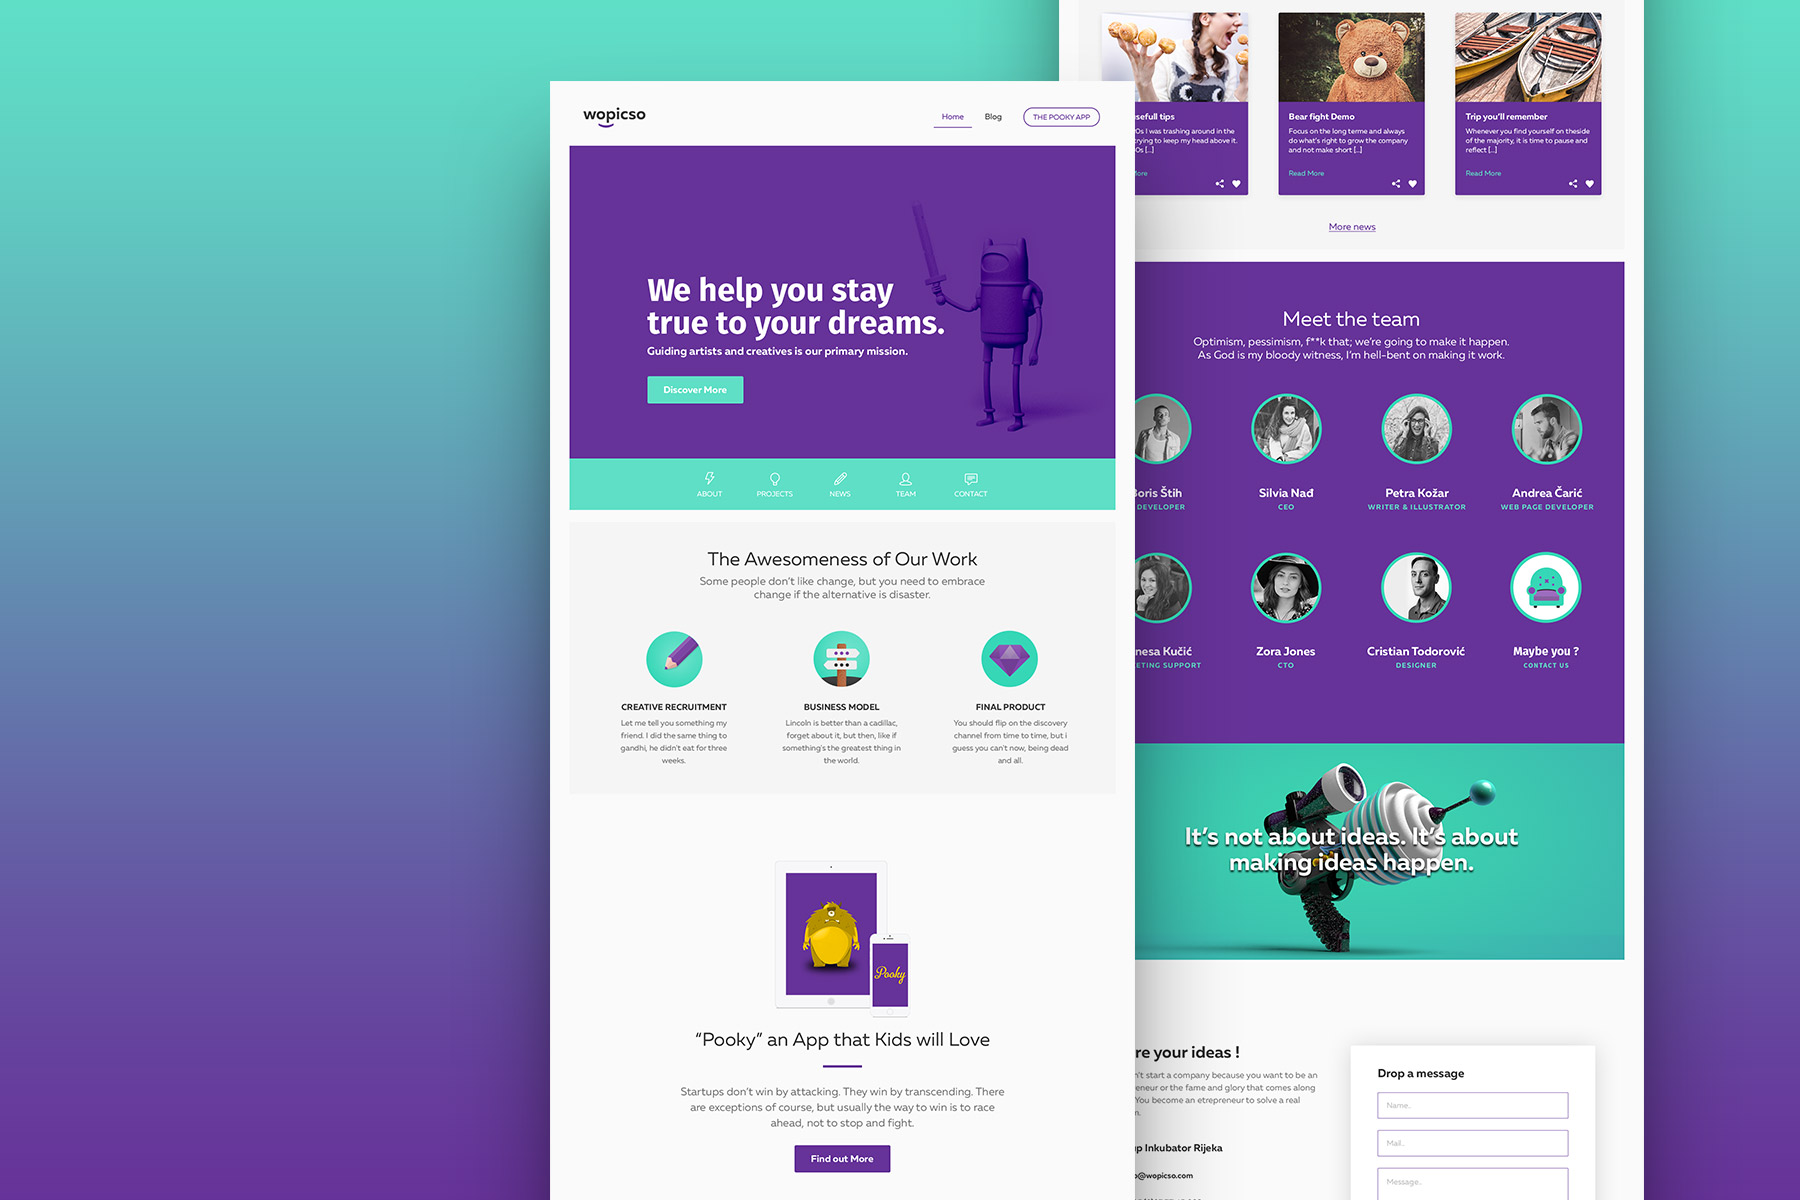 Wopicso Web Design project